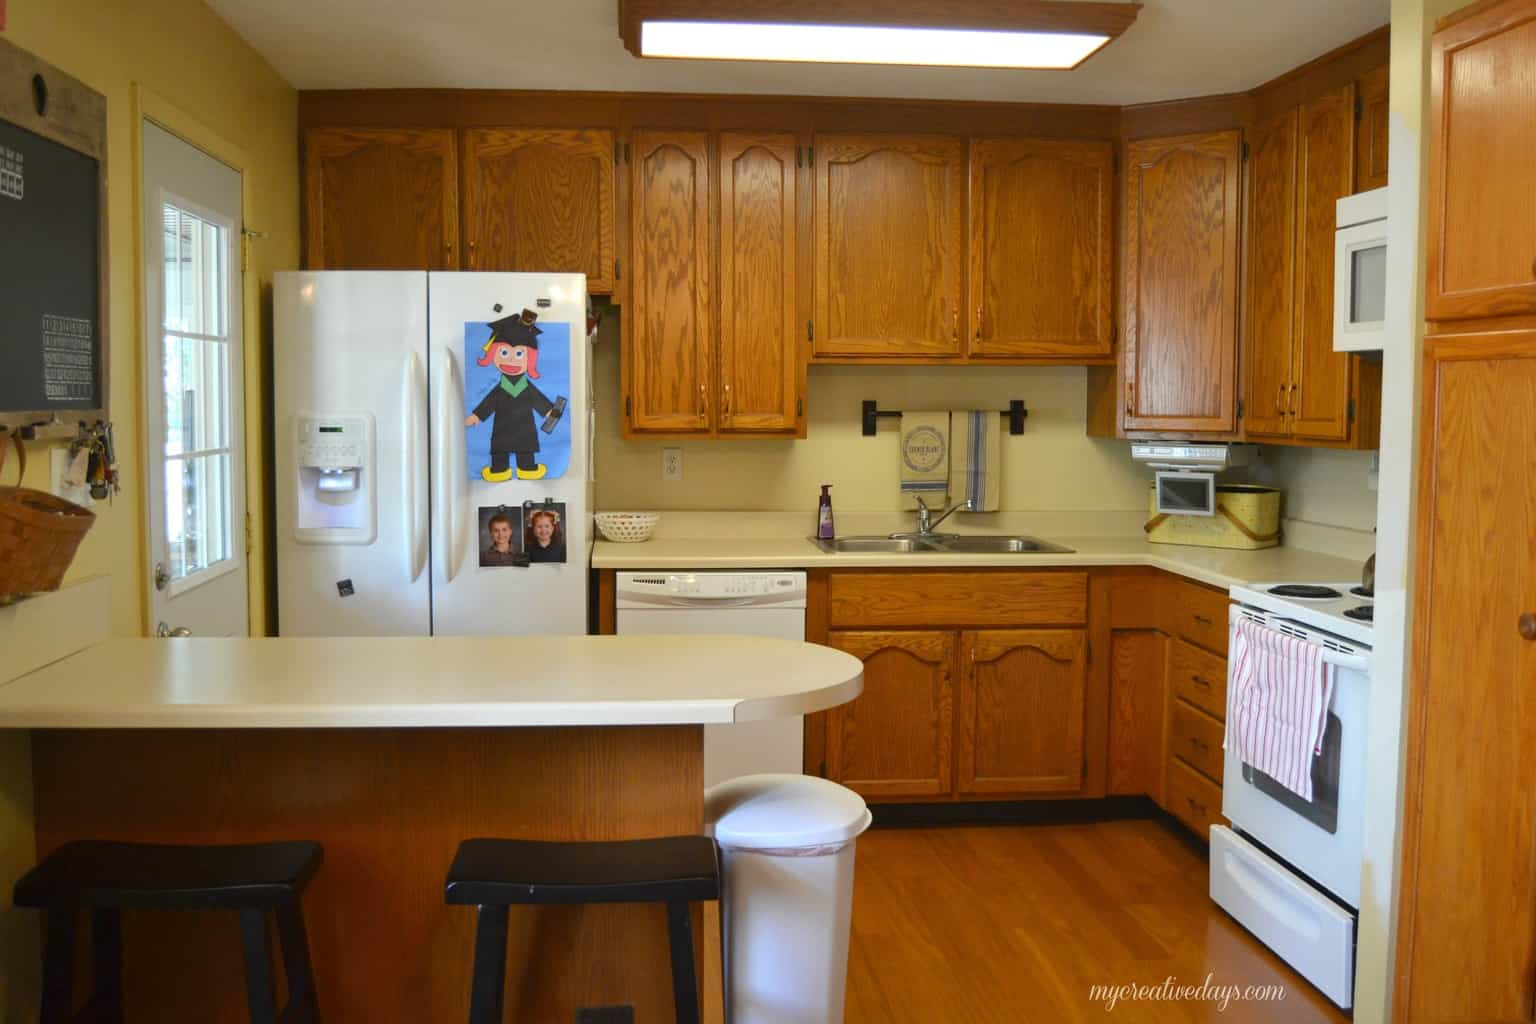 kitchen makeover painting the cabinets cleaning kitchen cabinets Pin this Kitchen Makeover Painting The Cabinets mycreativedays com